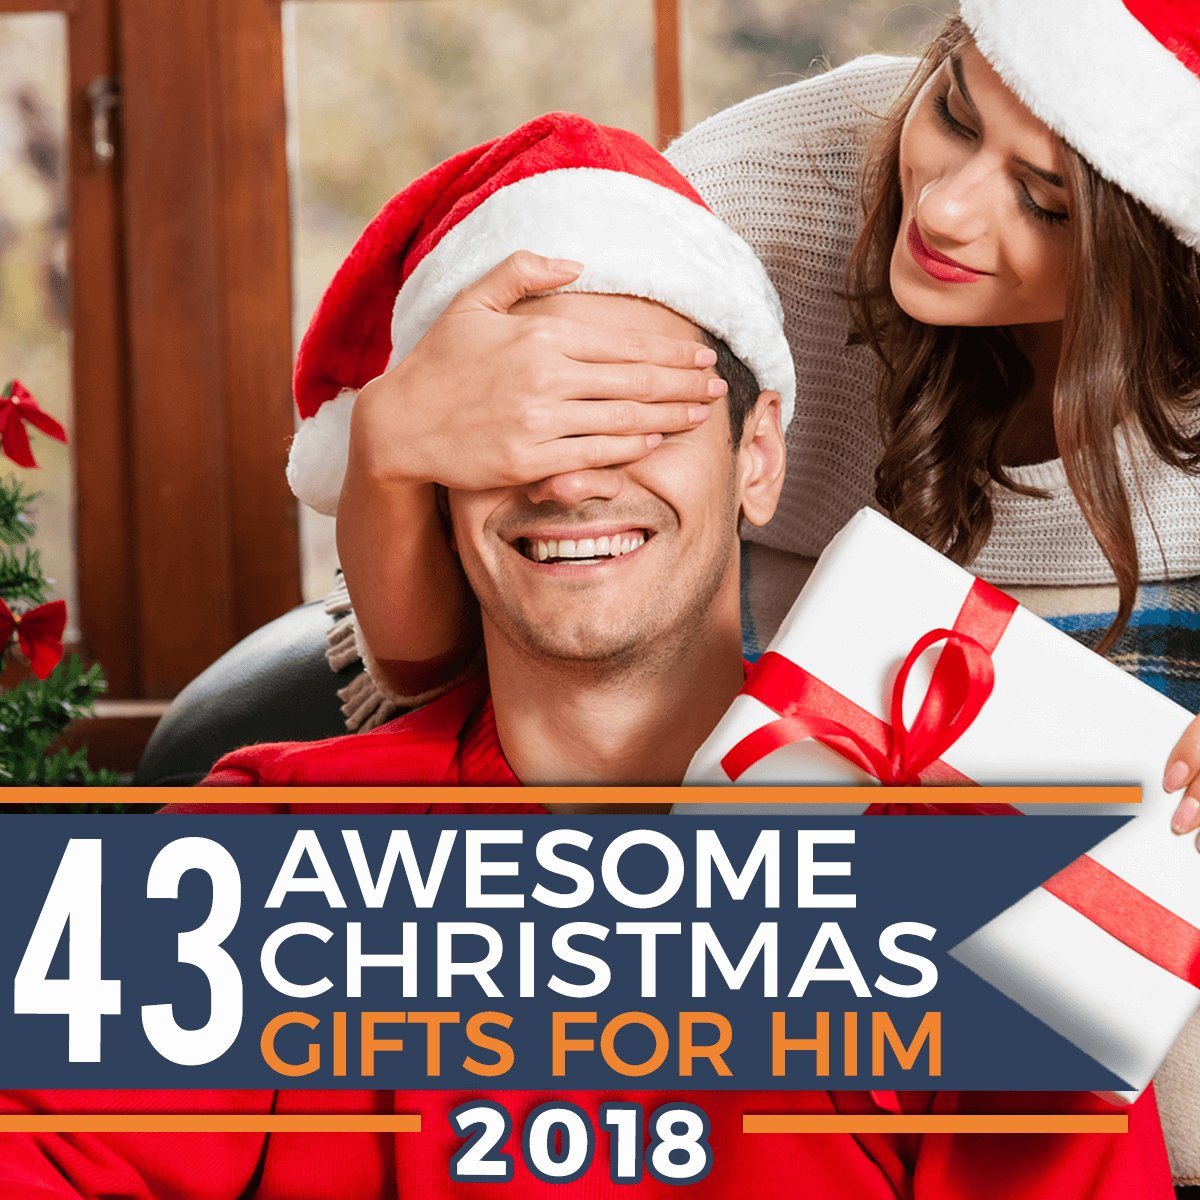 43 awesome christmas gifts for him 2018 homewetbar be awesome blog